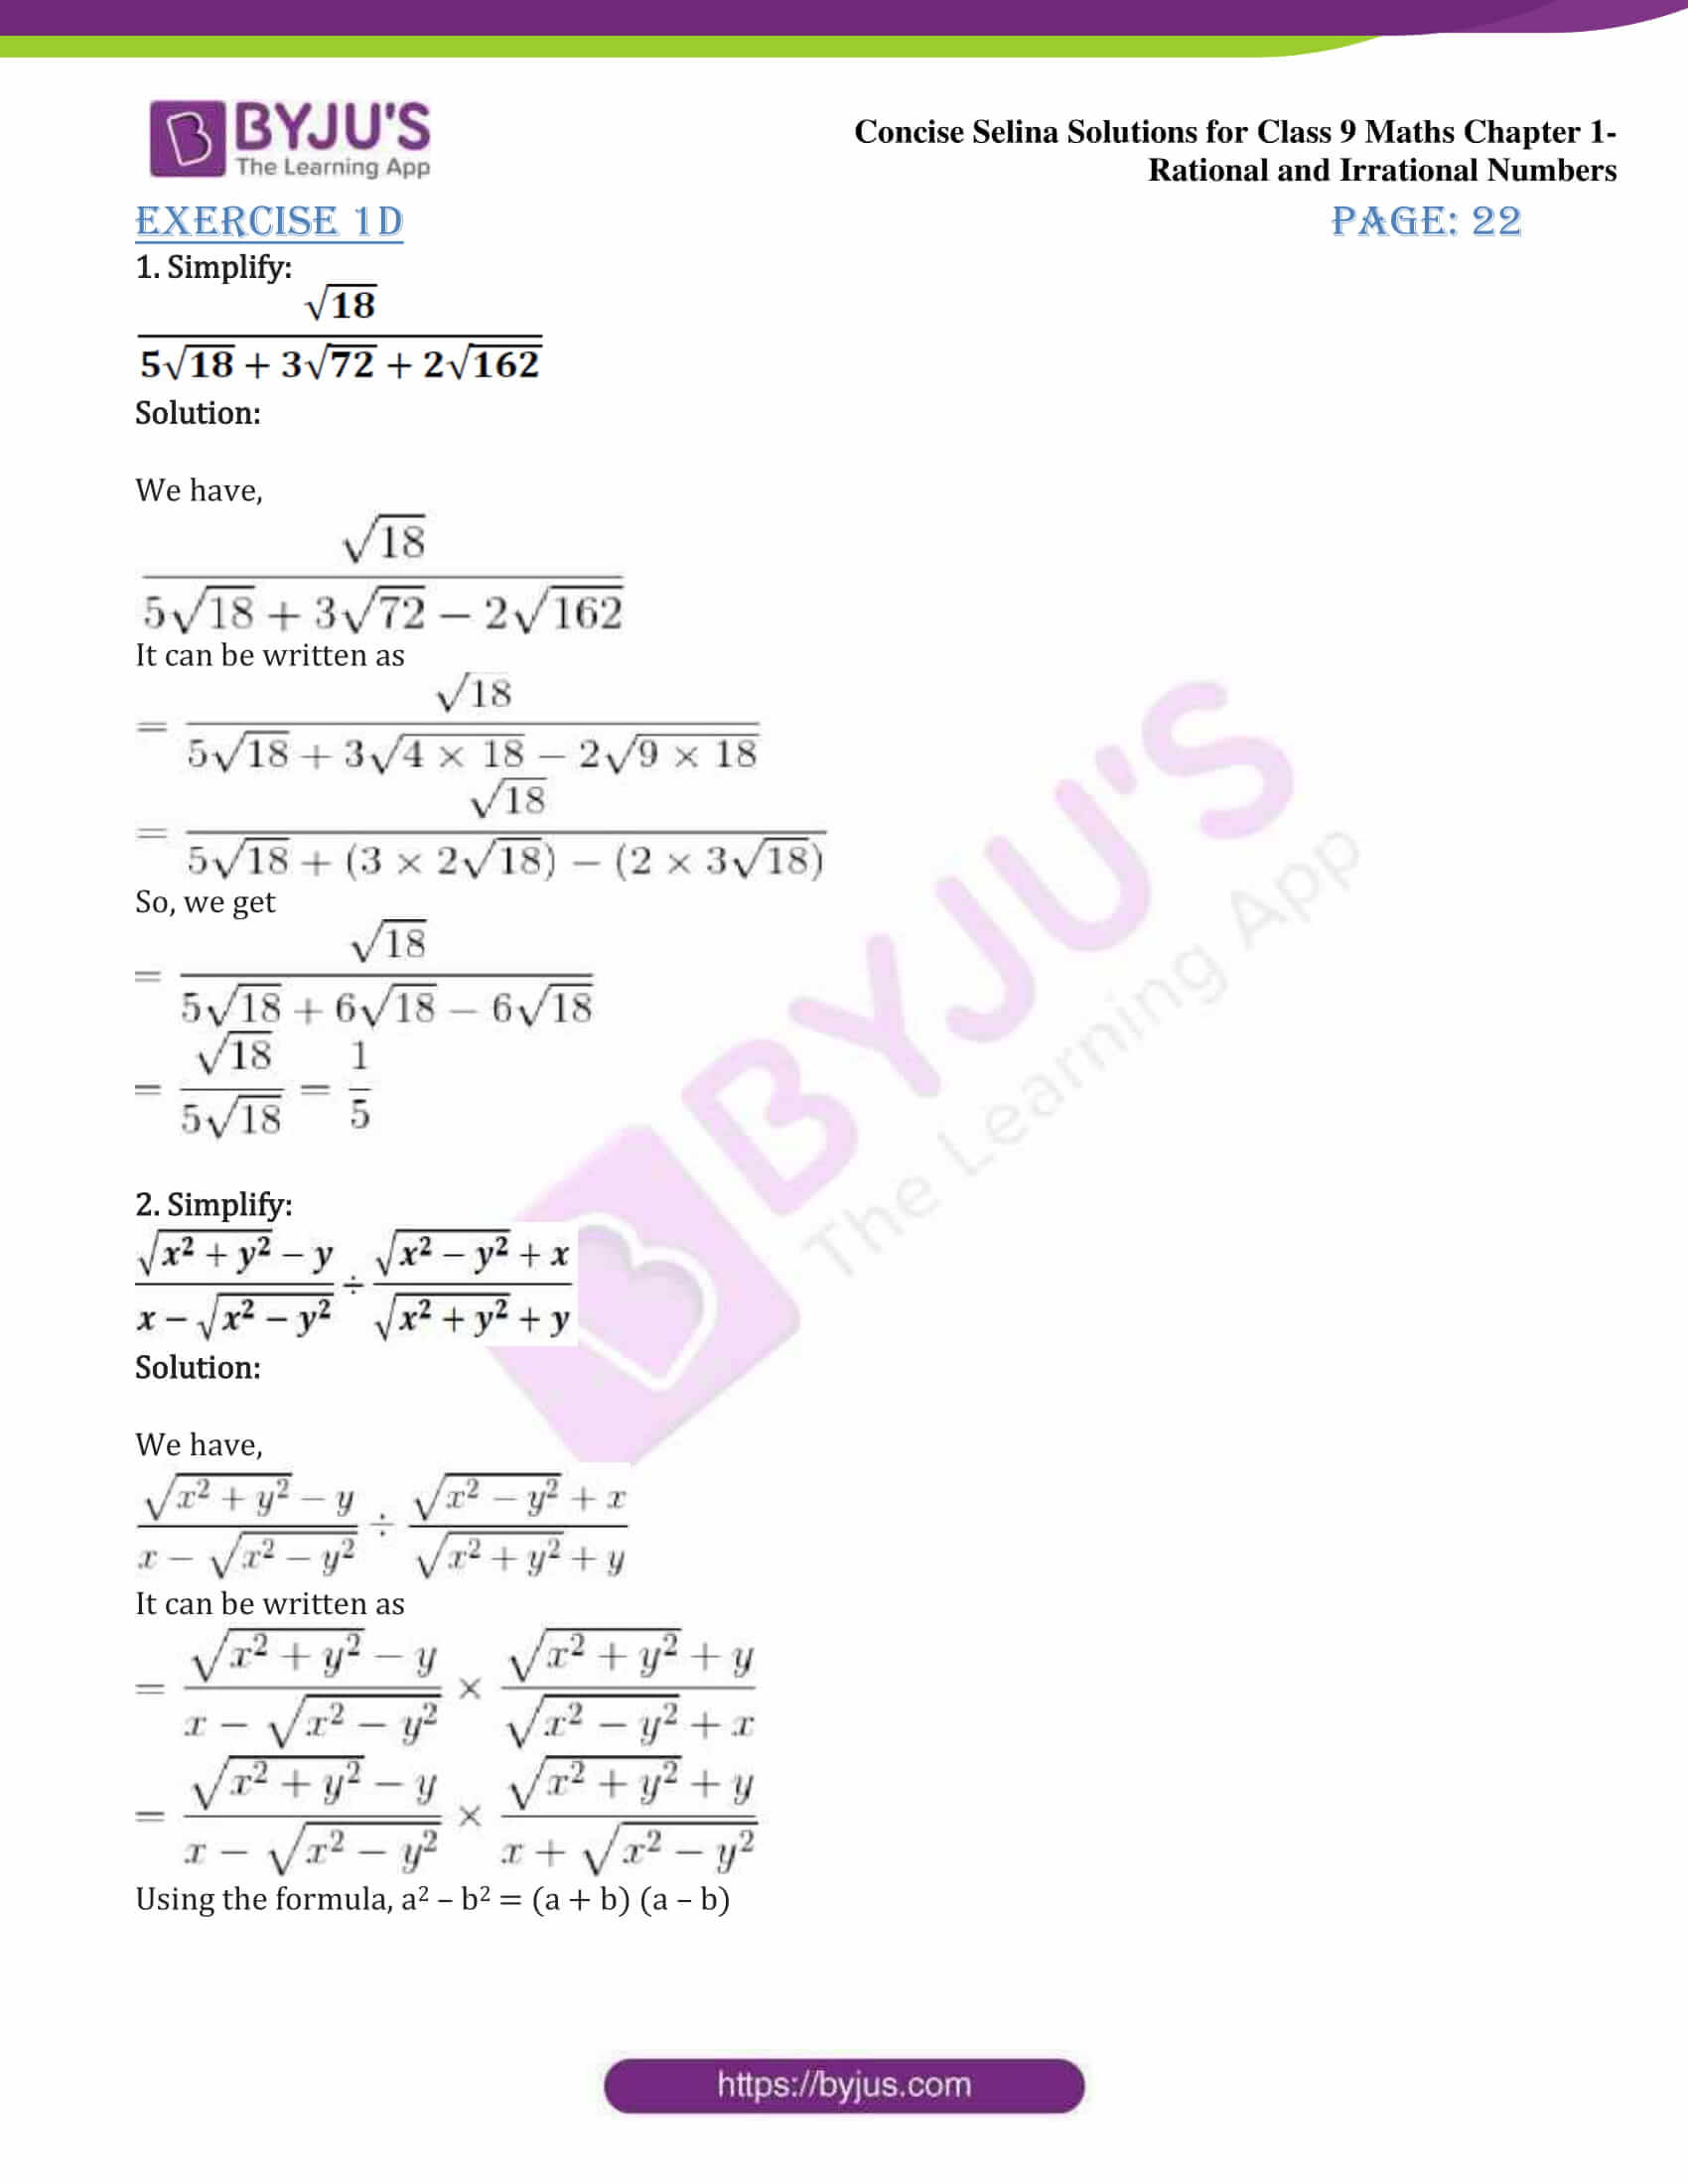 icse class 9 maths may13 selina solutions chapter 1 rational and irrational numbers 33